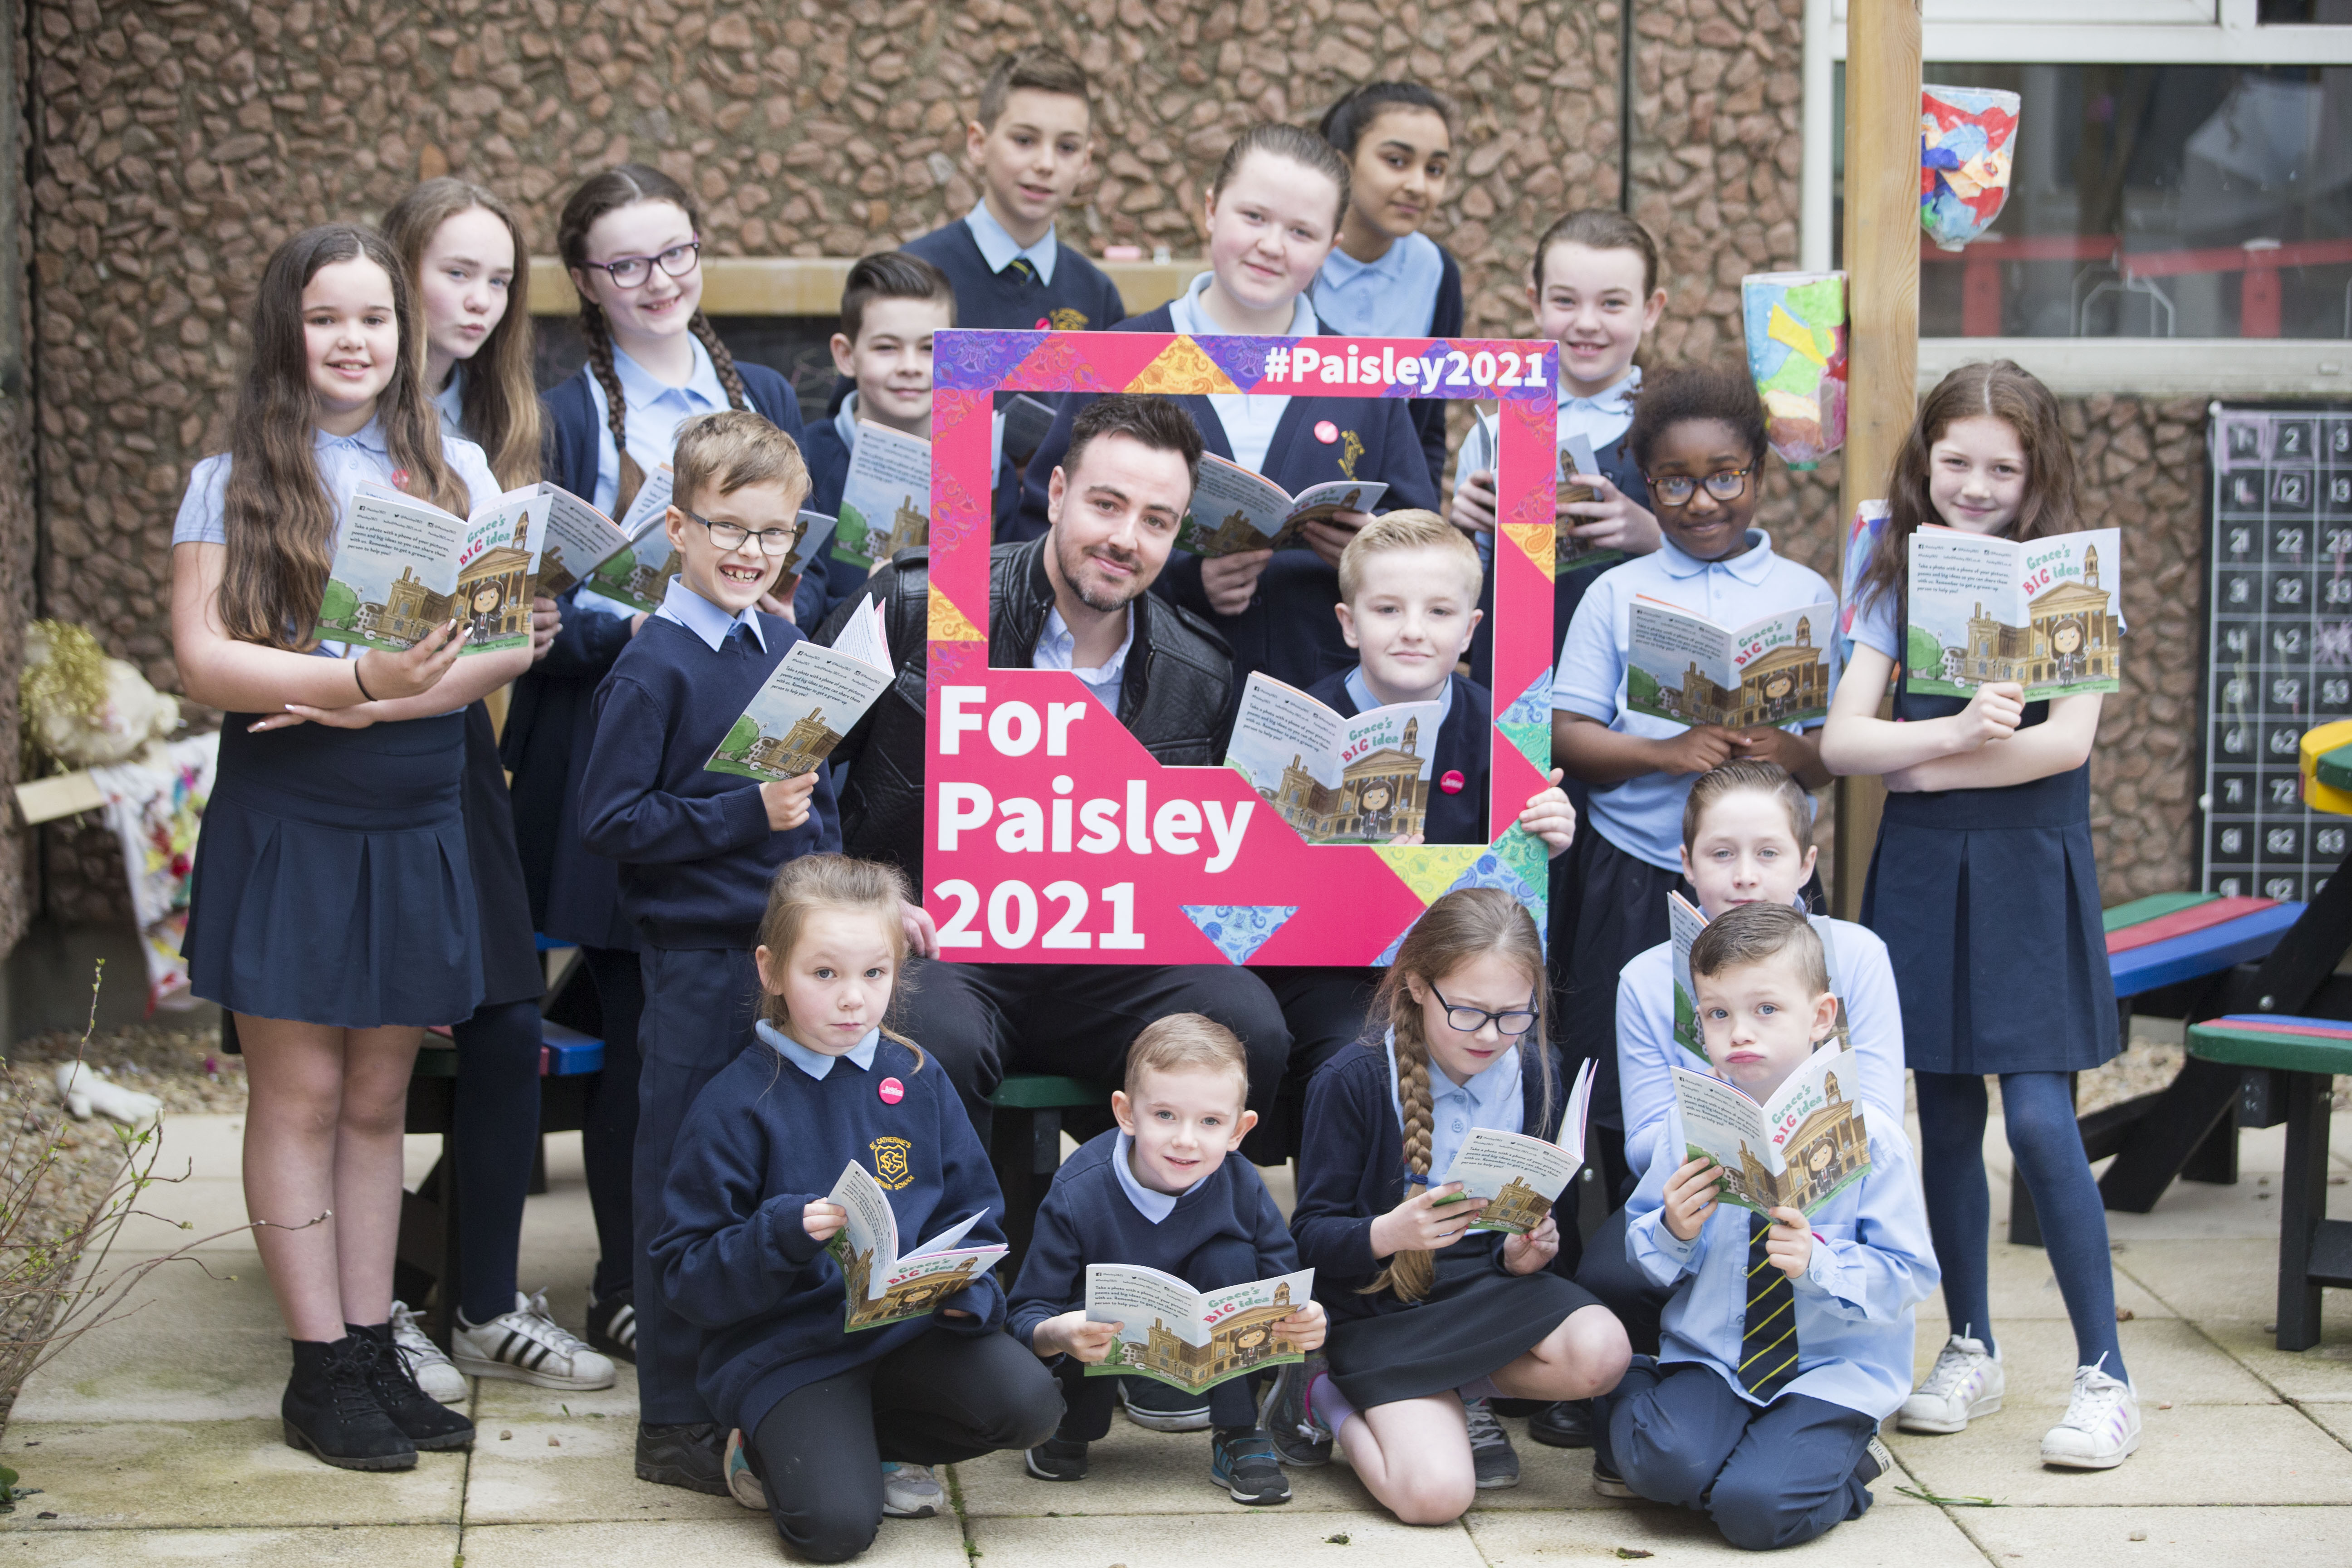 14,000 schoolkids to shape Paisley 2021 bid via special story